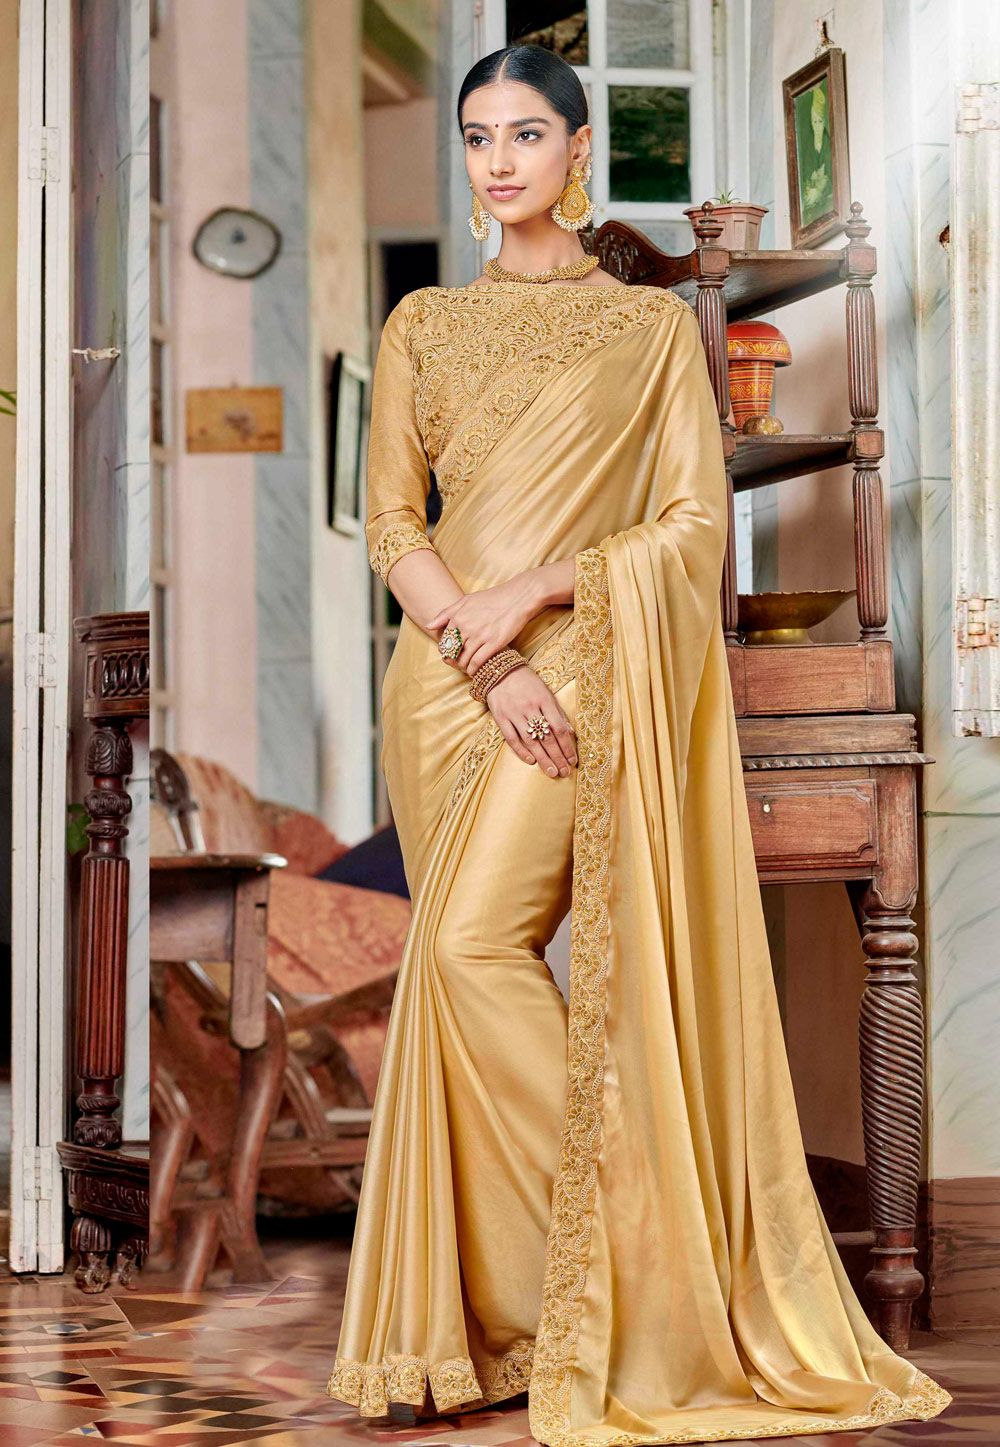 d2964e3e4c Buy Beige Satin Party Wear Saree 161941 with blouse online at lowest price  from vast collection of sarees at Indianclothstore.com.